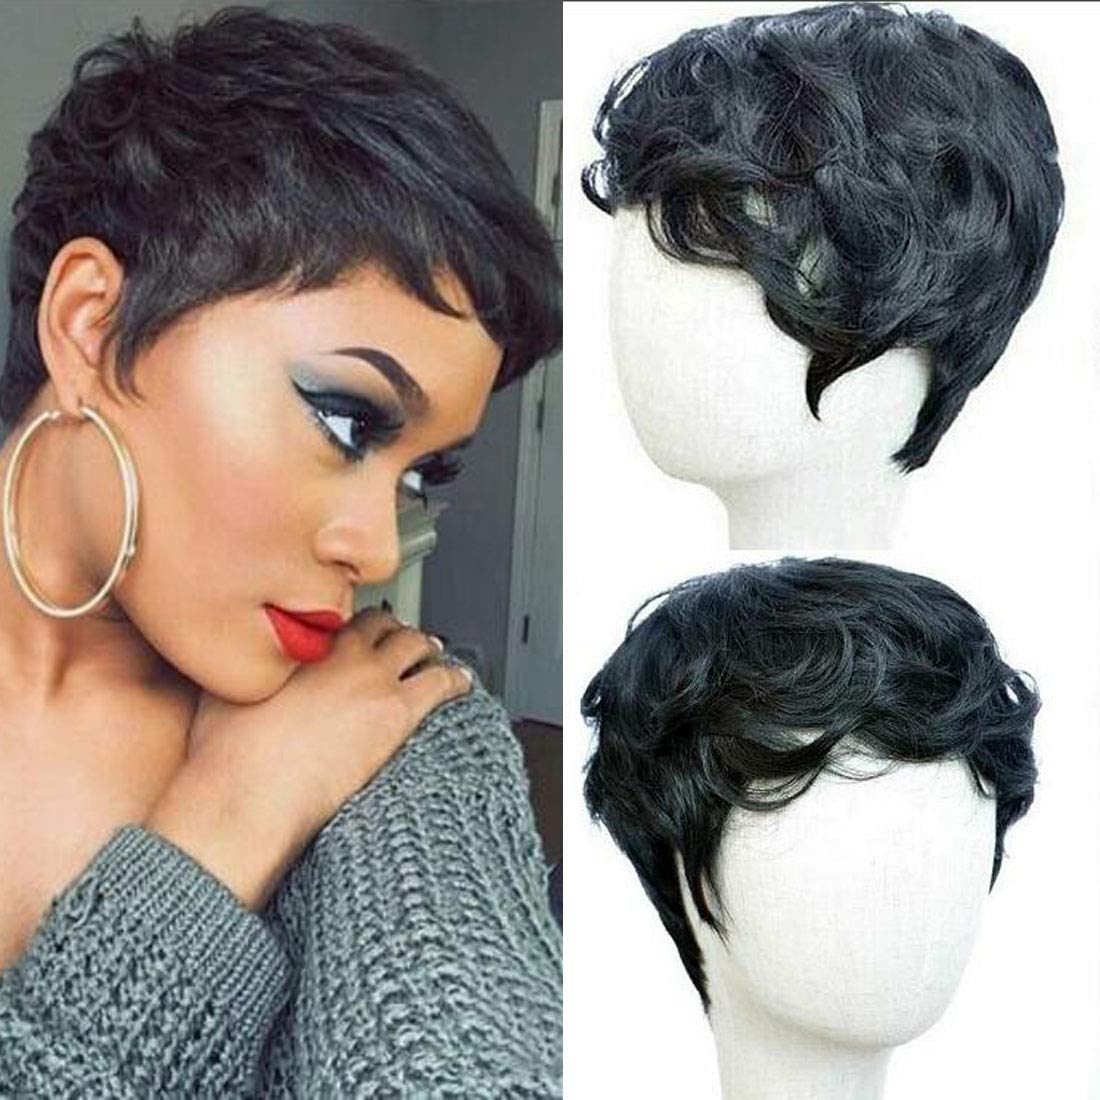 Amazon.com : Short Pixie Cut Hair Natural Synthetic Wigs For Women Heat Resistant Wig Natural ...